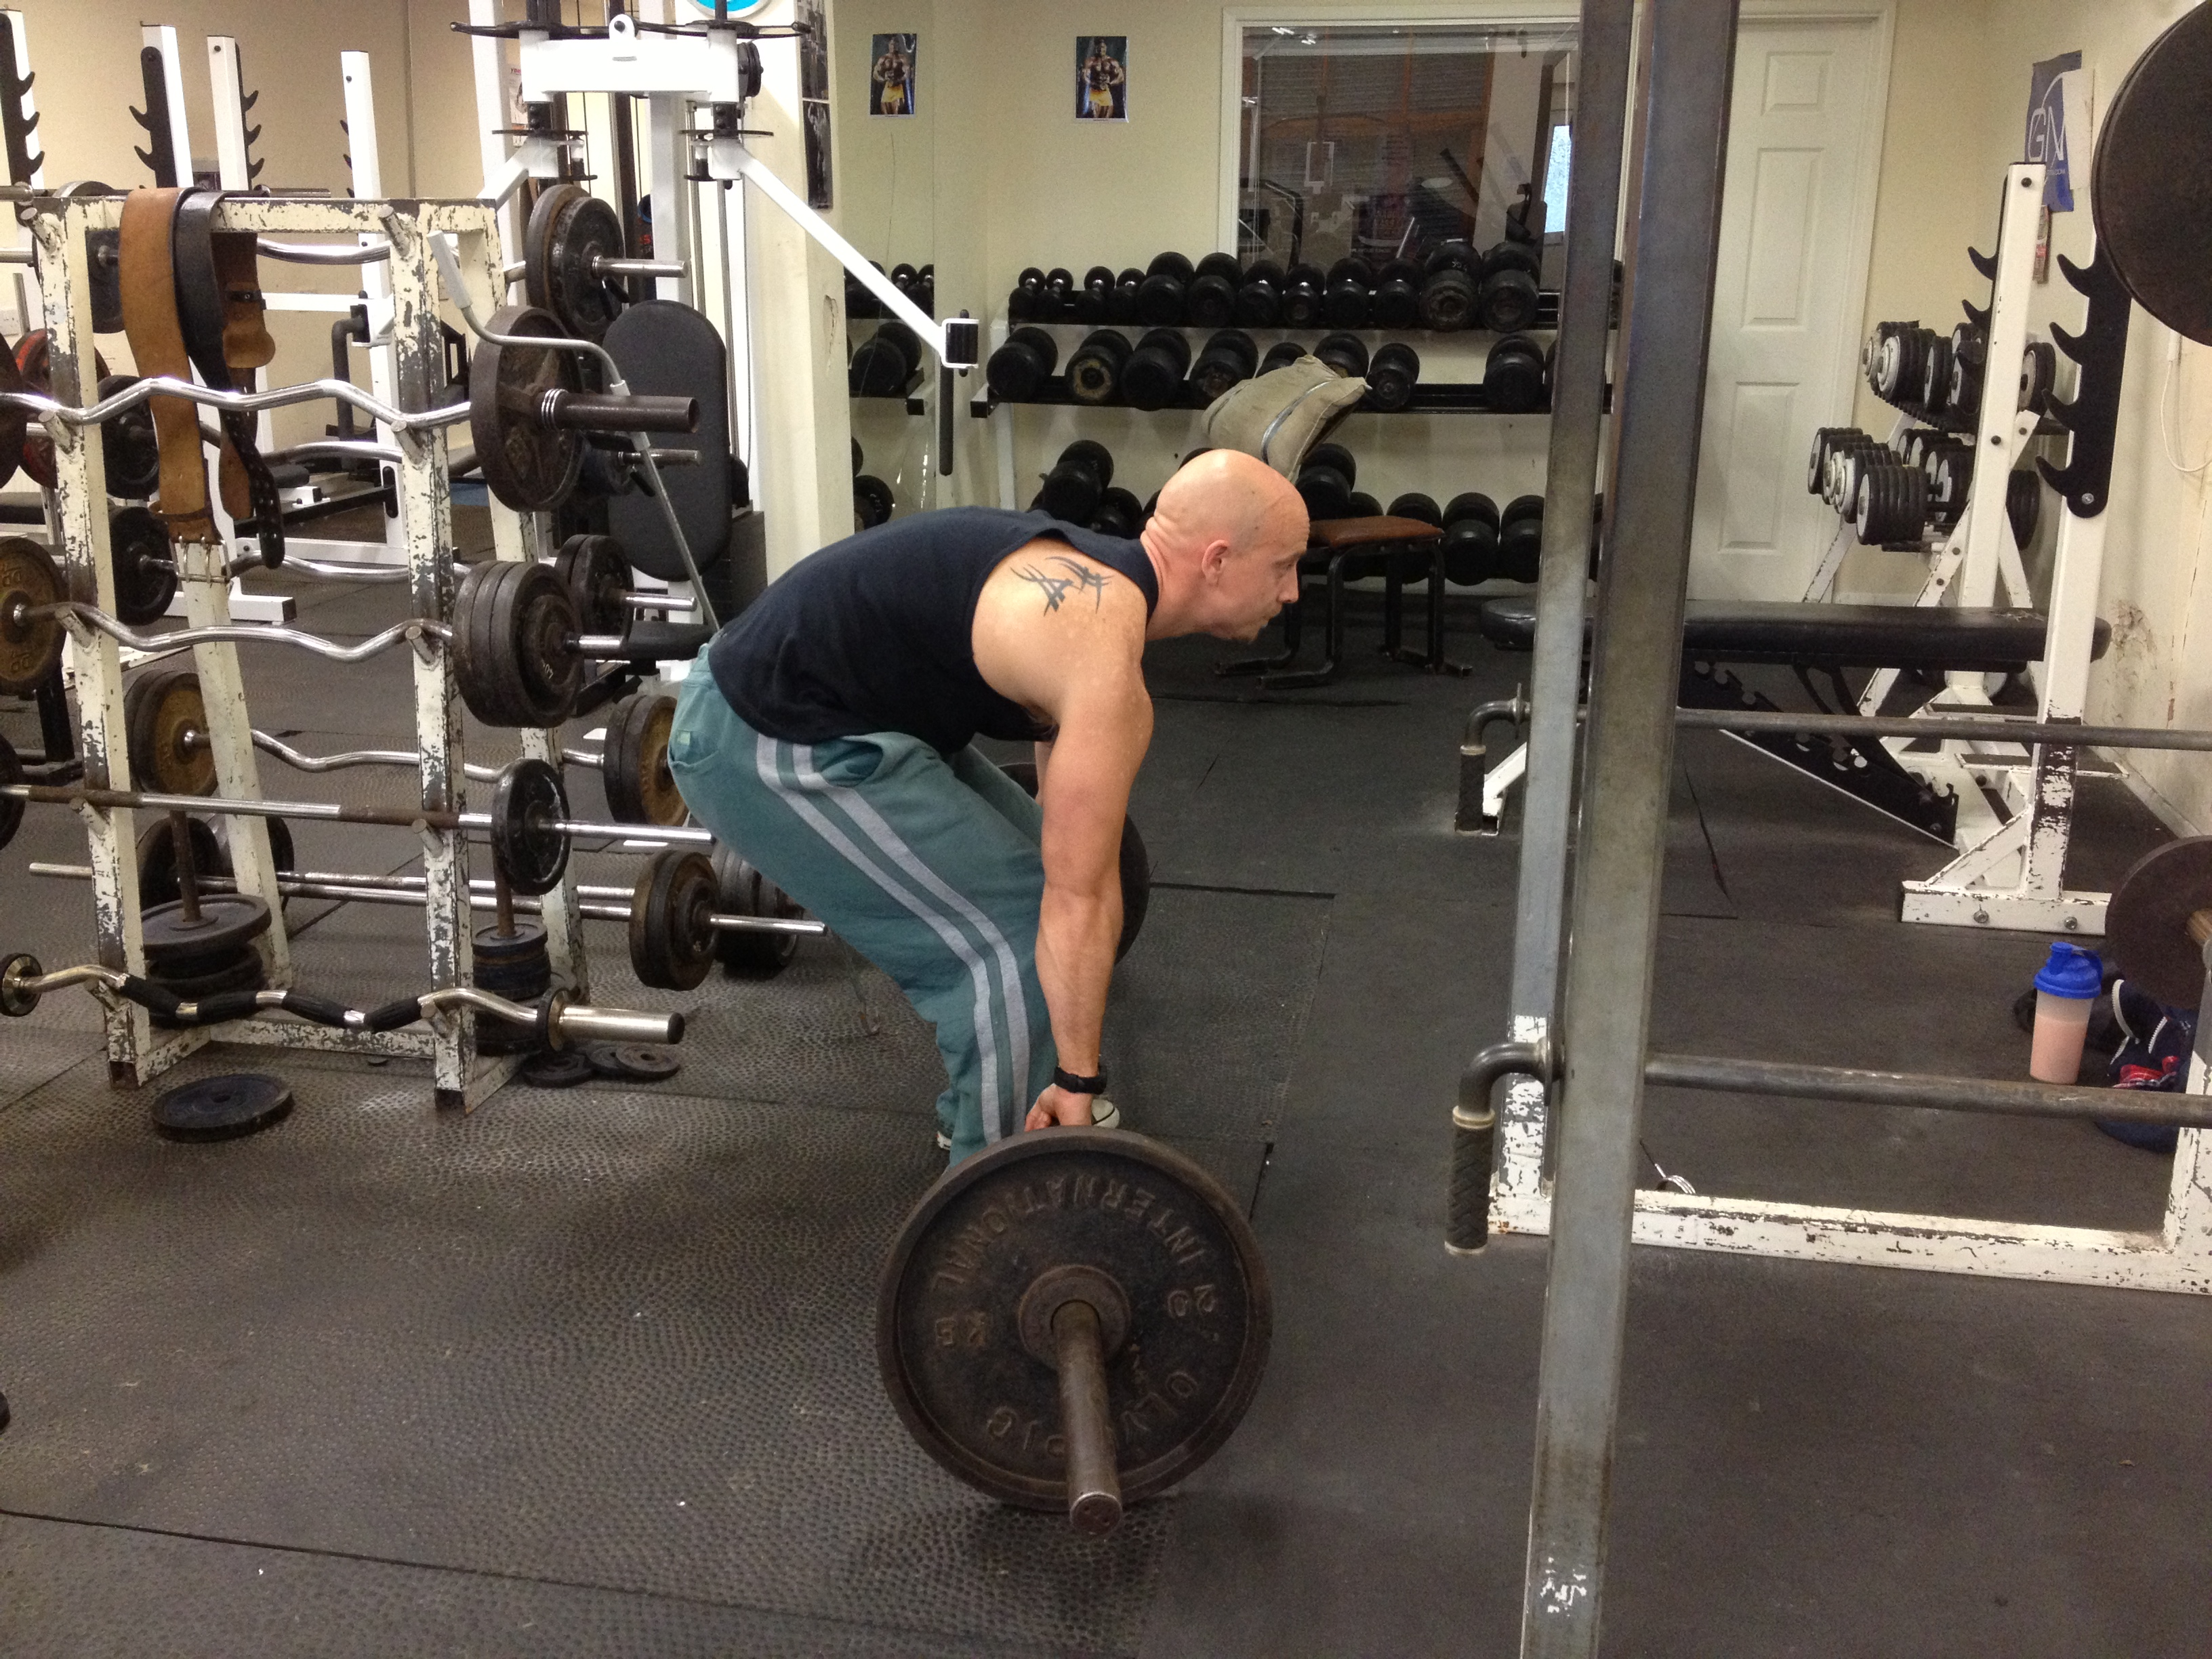 Image Gallery of Bad Deadlift Form Funny